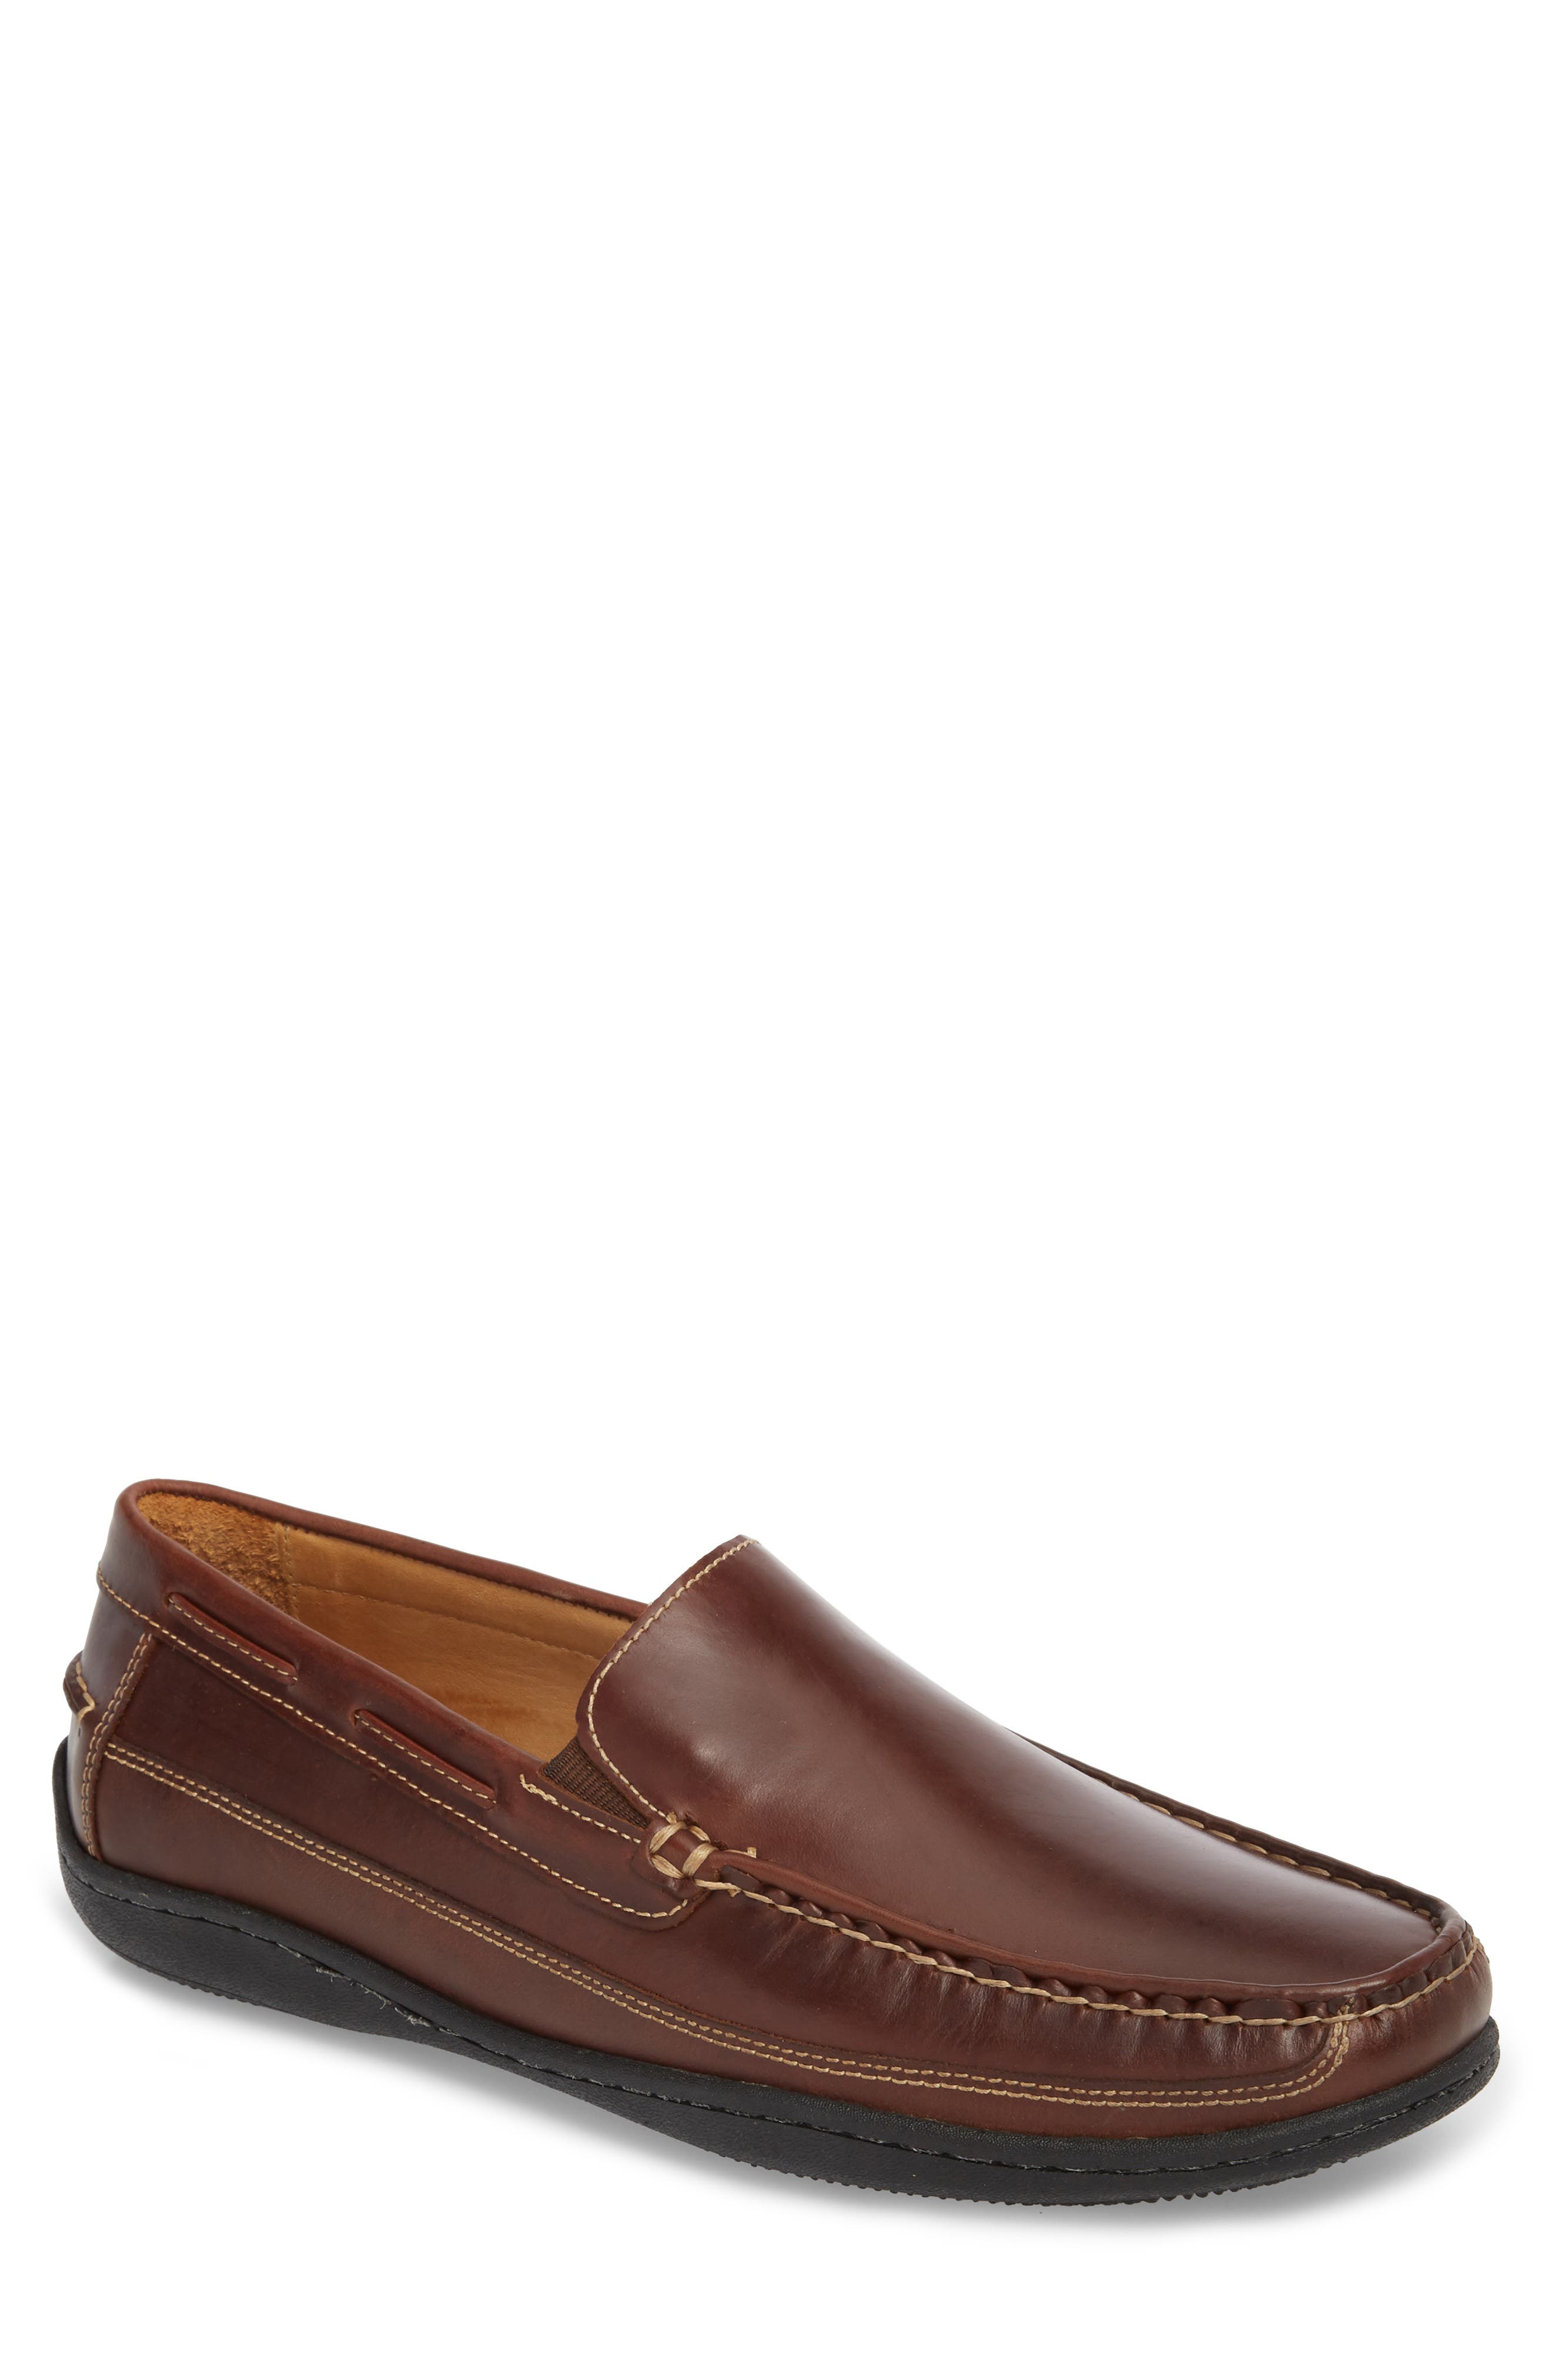 Fowler Moc Toe Loafer,                             Main thumbnail 1, color,                             Mahogany Leather